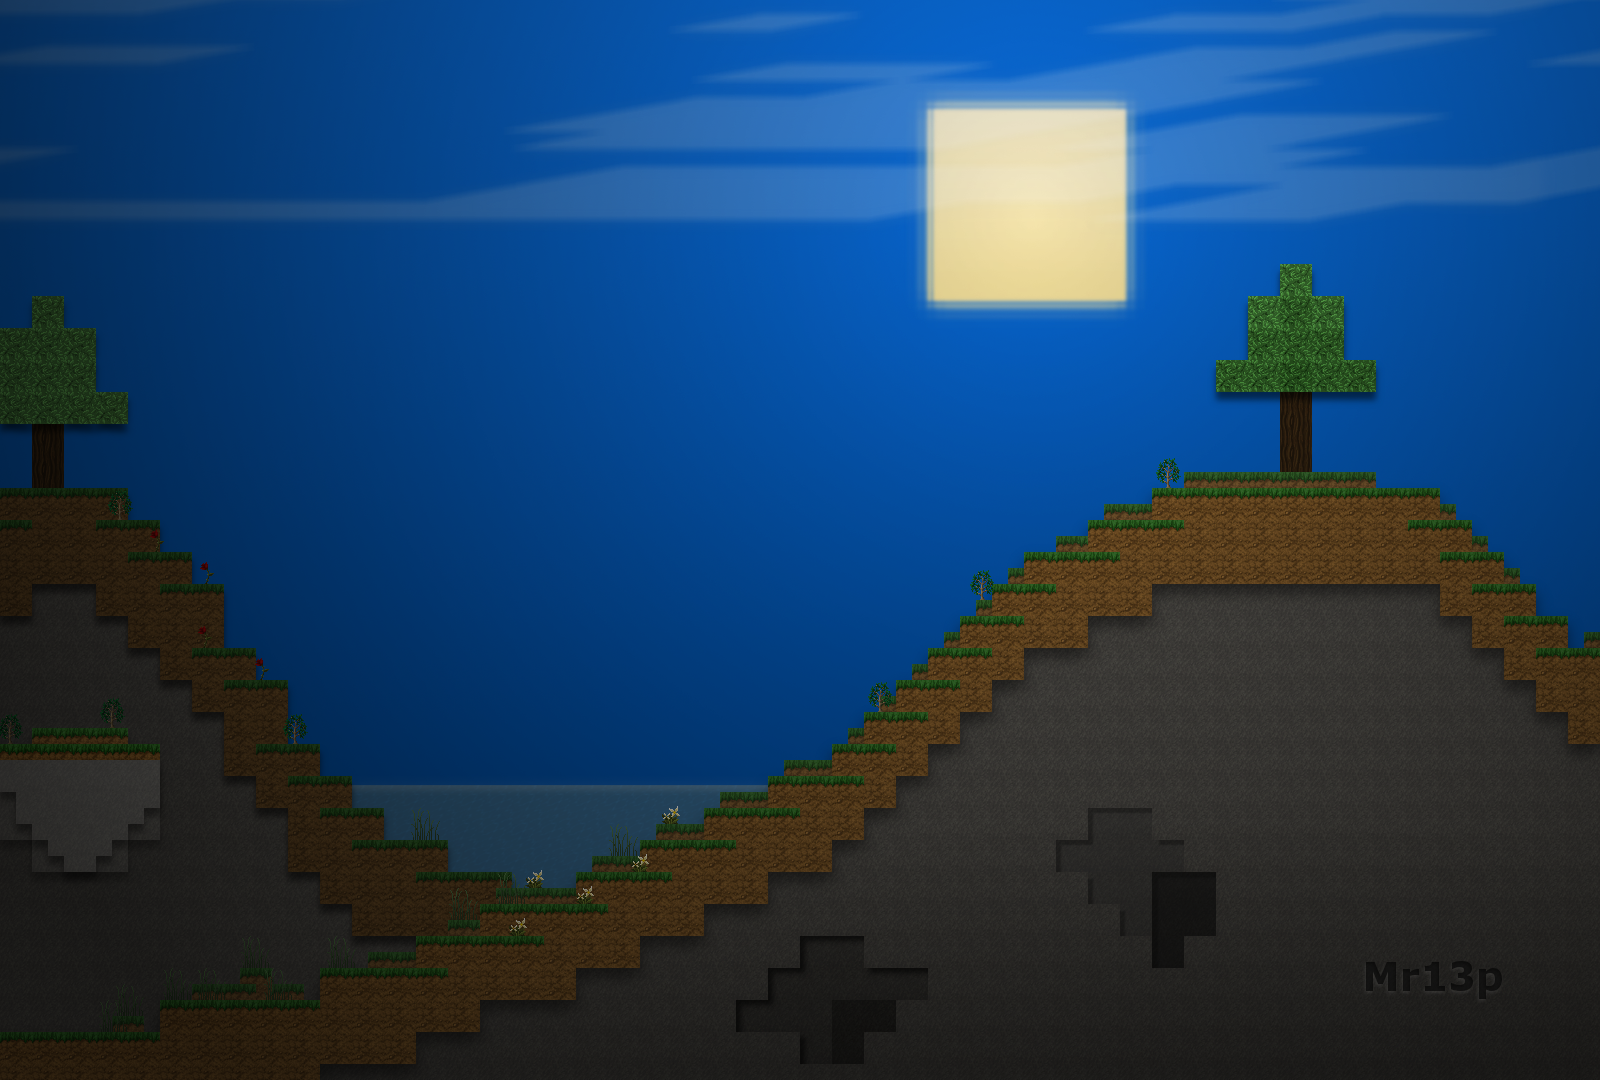 Download Wallpaper Minecraft Art - minecraft_2_5d_a_sunny_horizon_by_mr13p-d49b23v  Pictures_303771.png